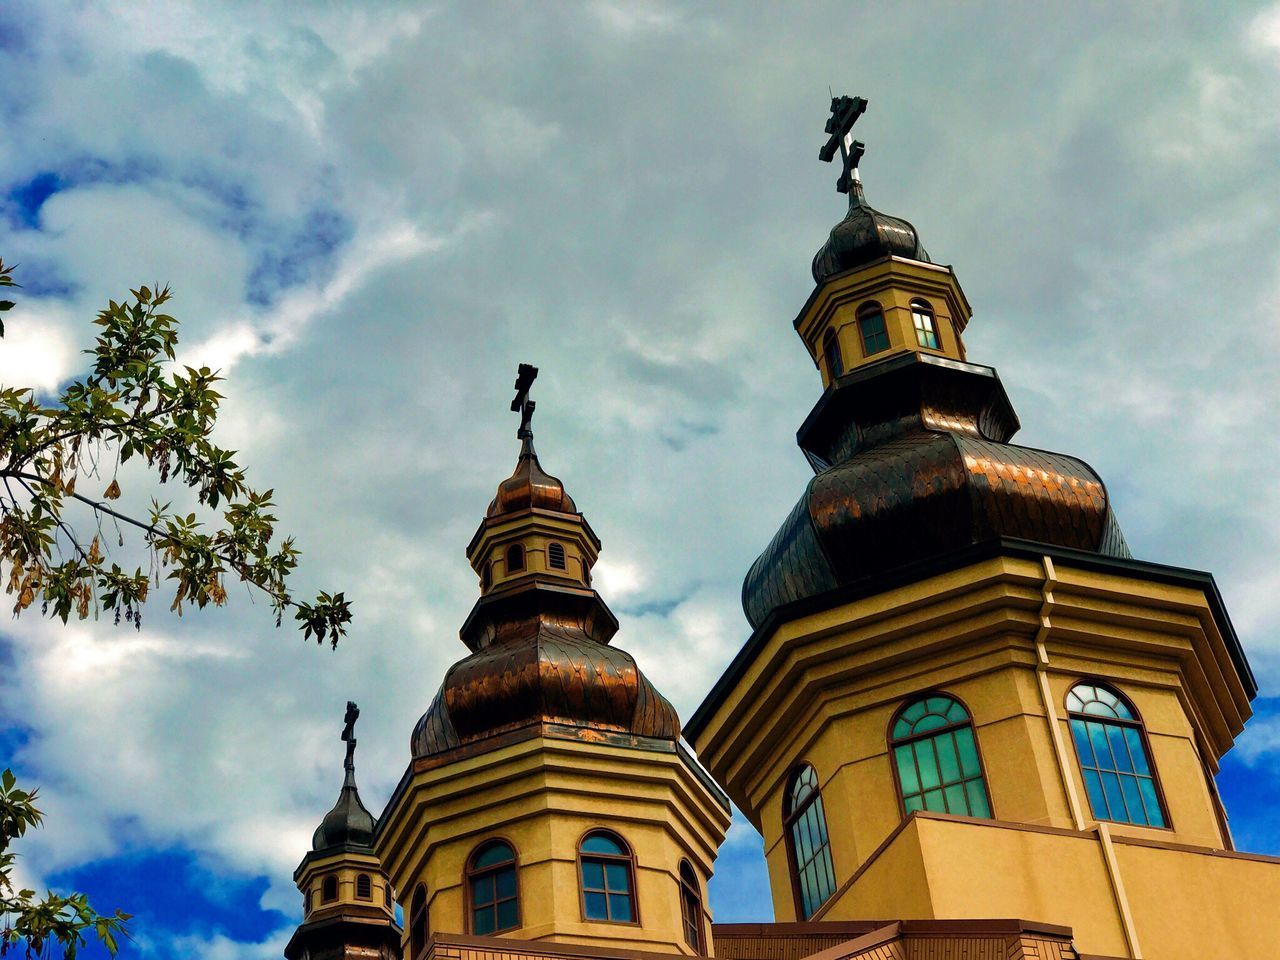 Architecture Low Angle View Sky Built Structure Religion Building Exterior Cloud - Sky Place Of Worship Spirituality No People Day Outdoors Blue Sky Church IPhone 7Plus IPhoneography Architecture